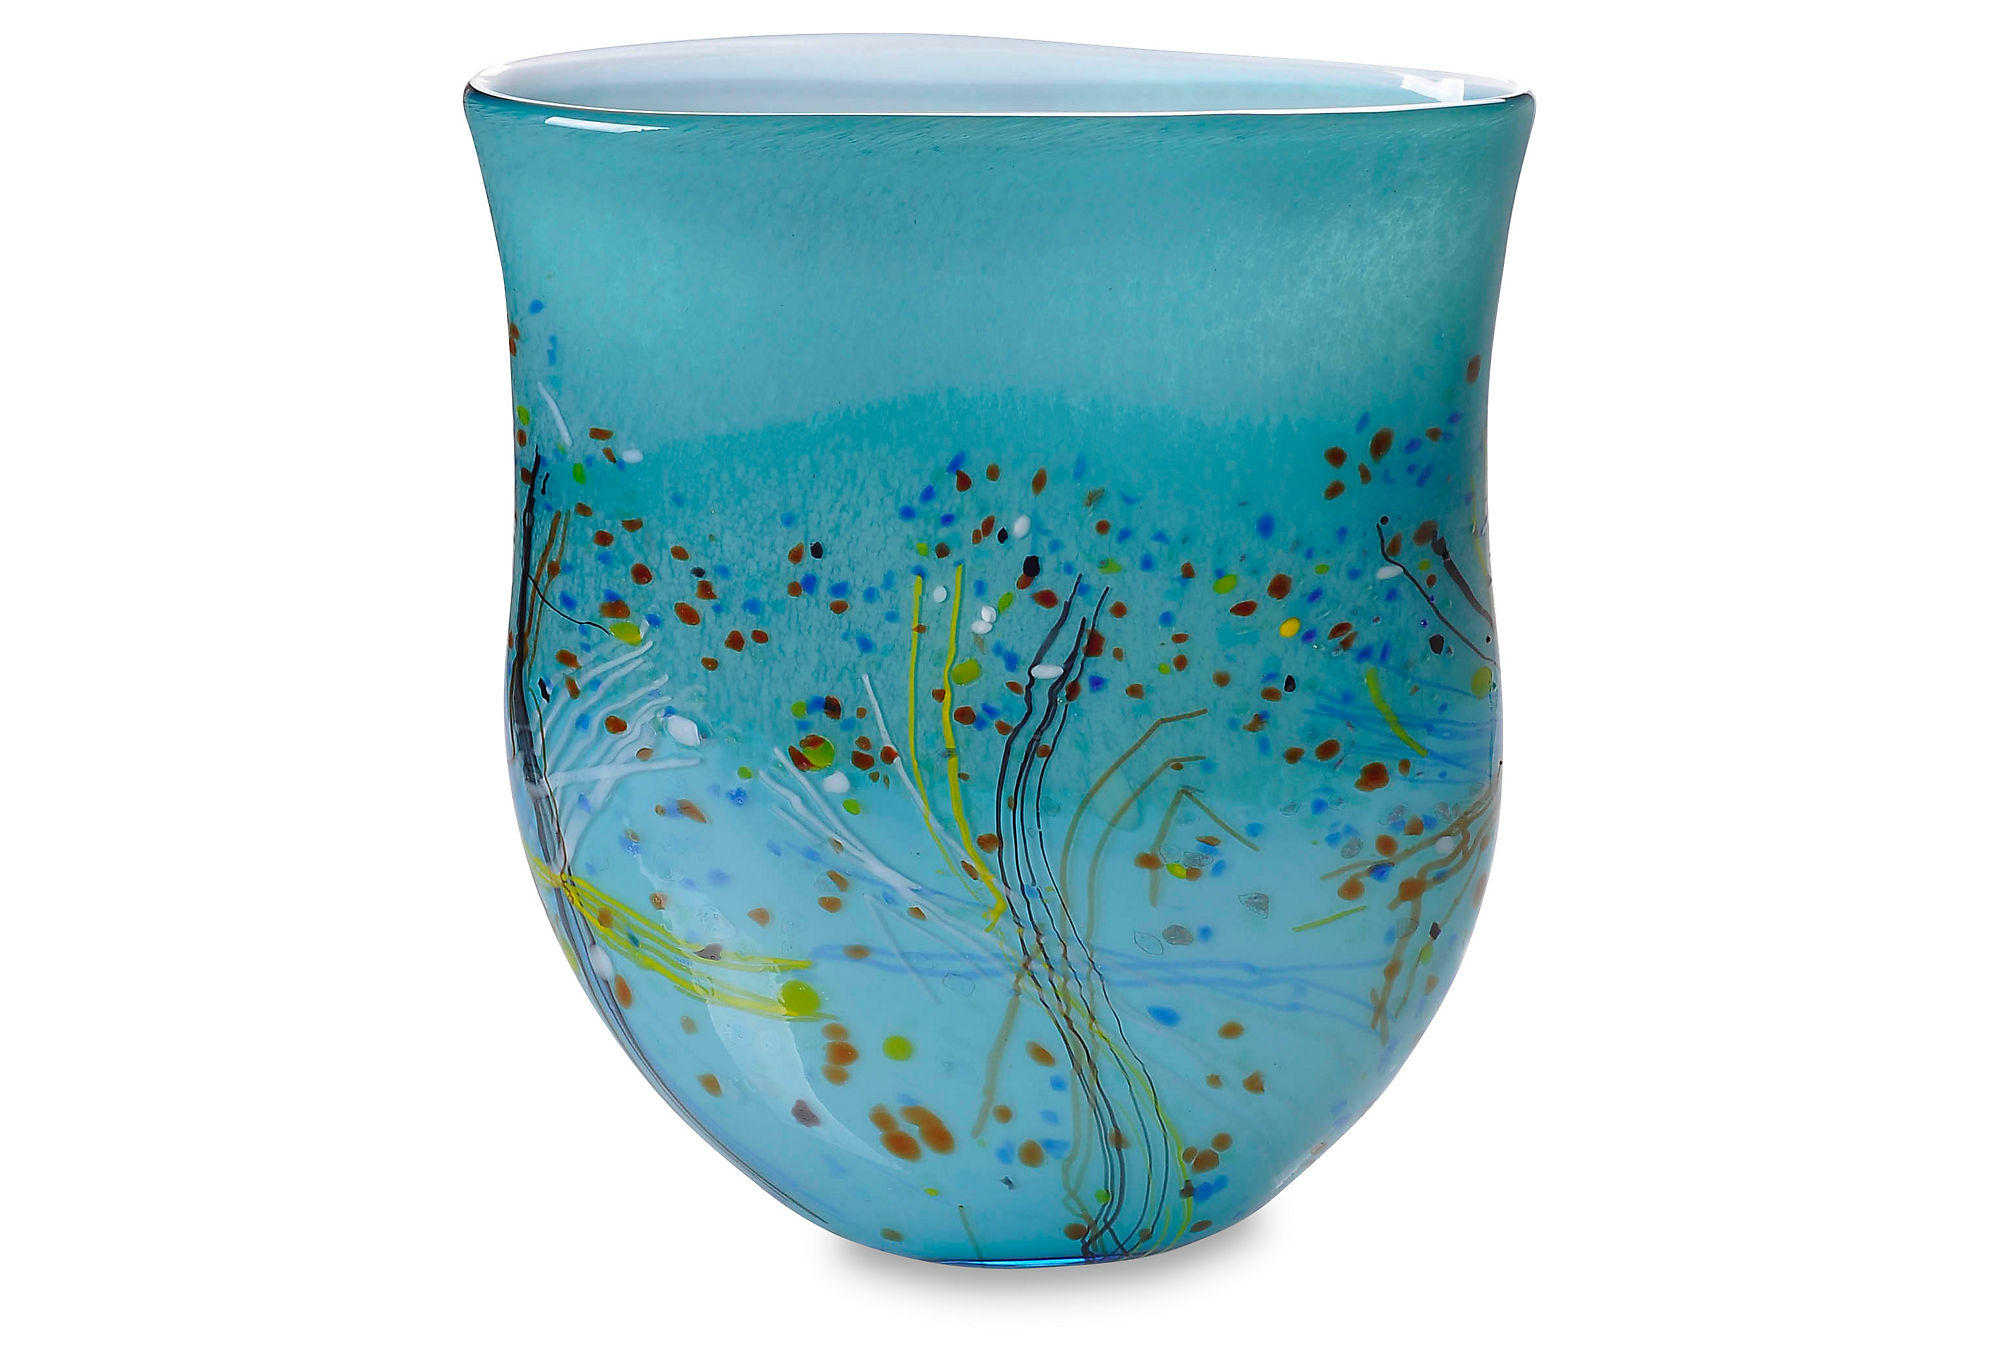 14 Quot Color Myriad Art Glass Vase Teal From One Kings Lane